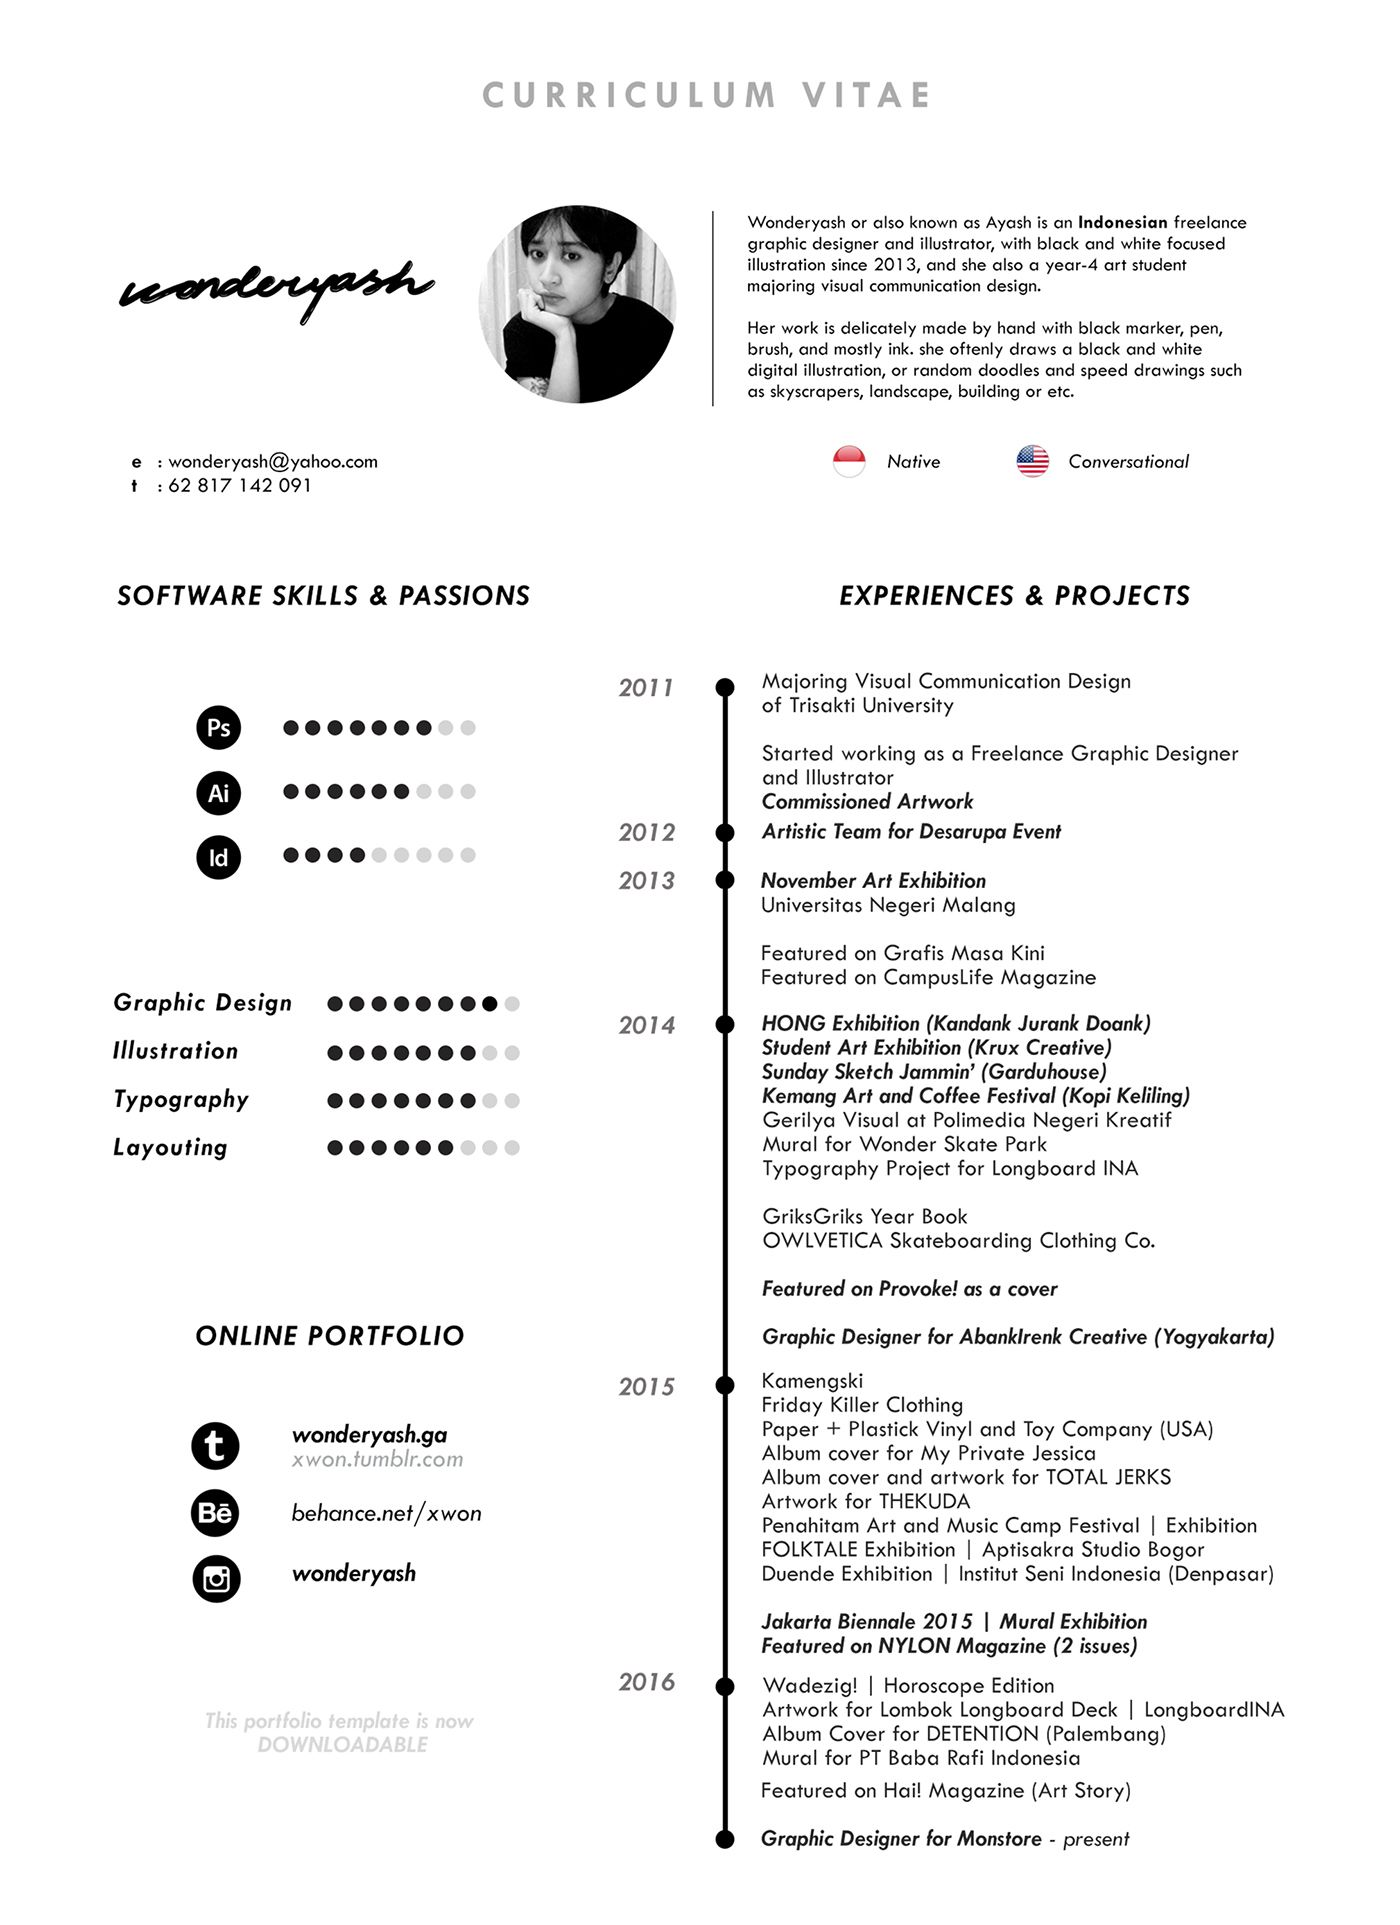 Template Curriculum Vitae Curriculum Vitae Template Available For Downloadon Behance  Cv